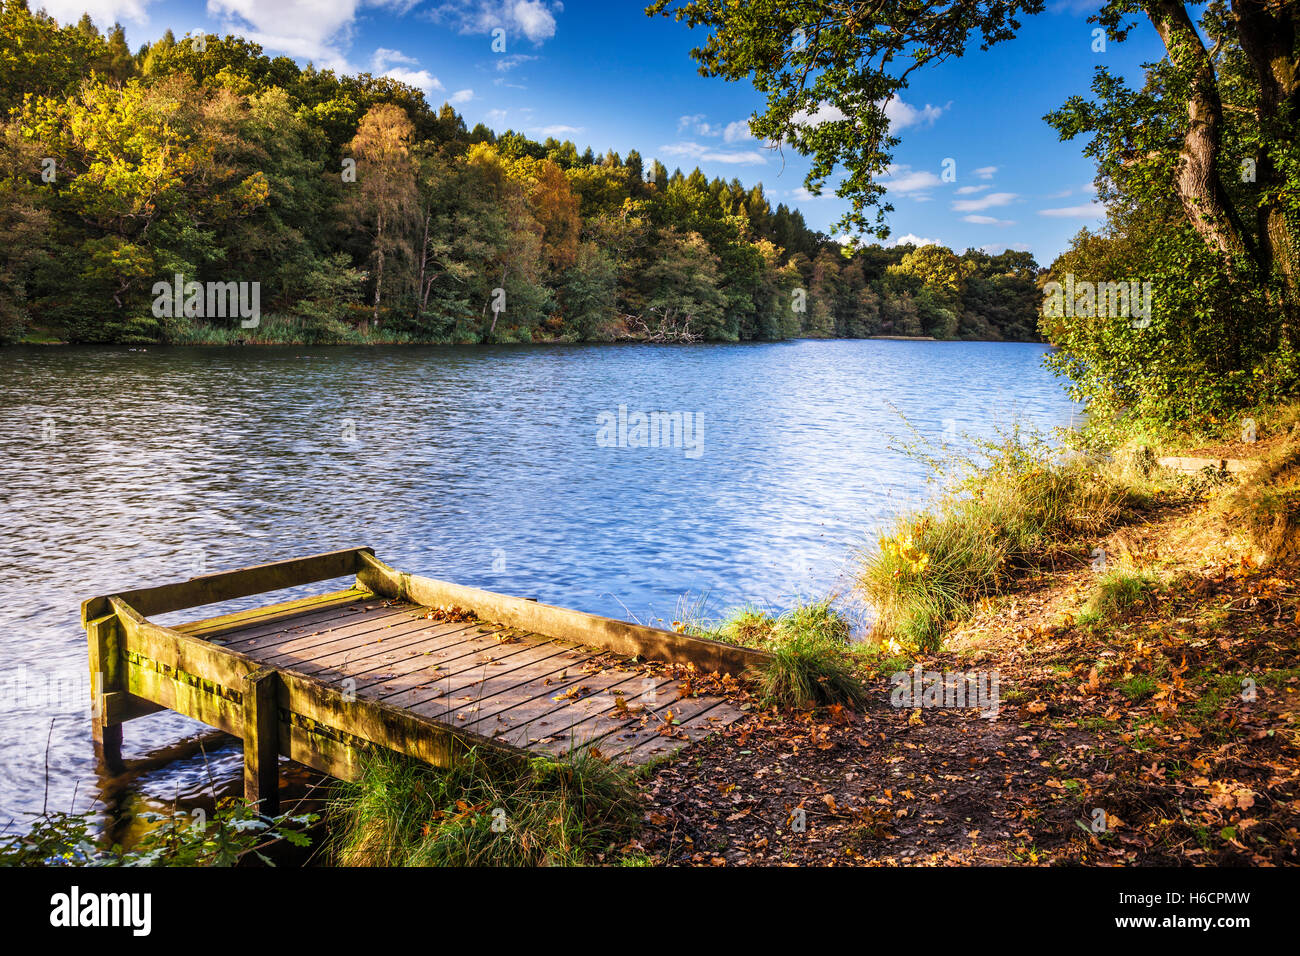 Cannop Ponds in the Forest of Dean, Gloucestershire. - Stock Image